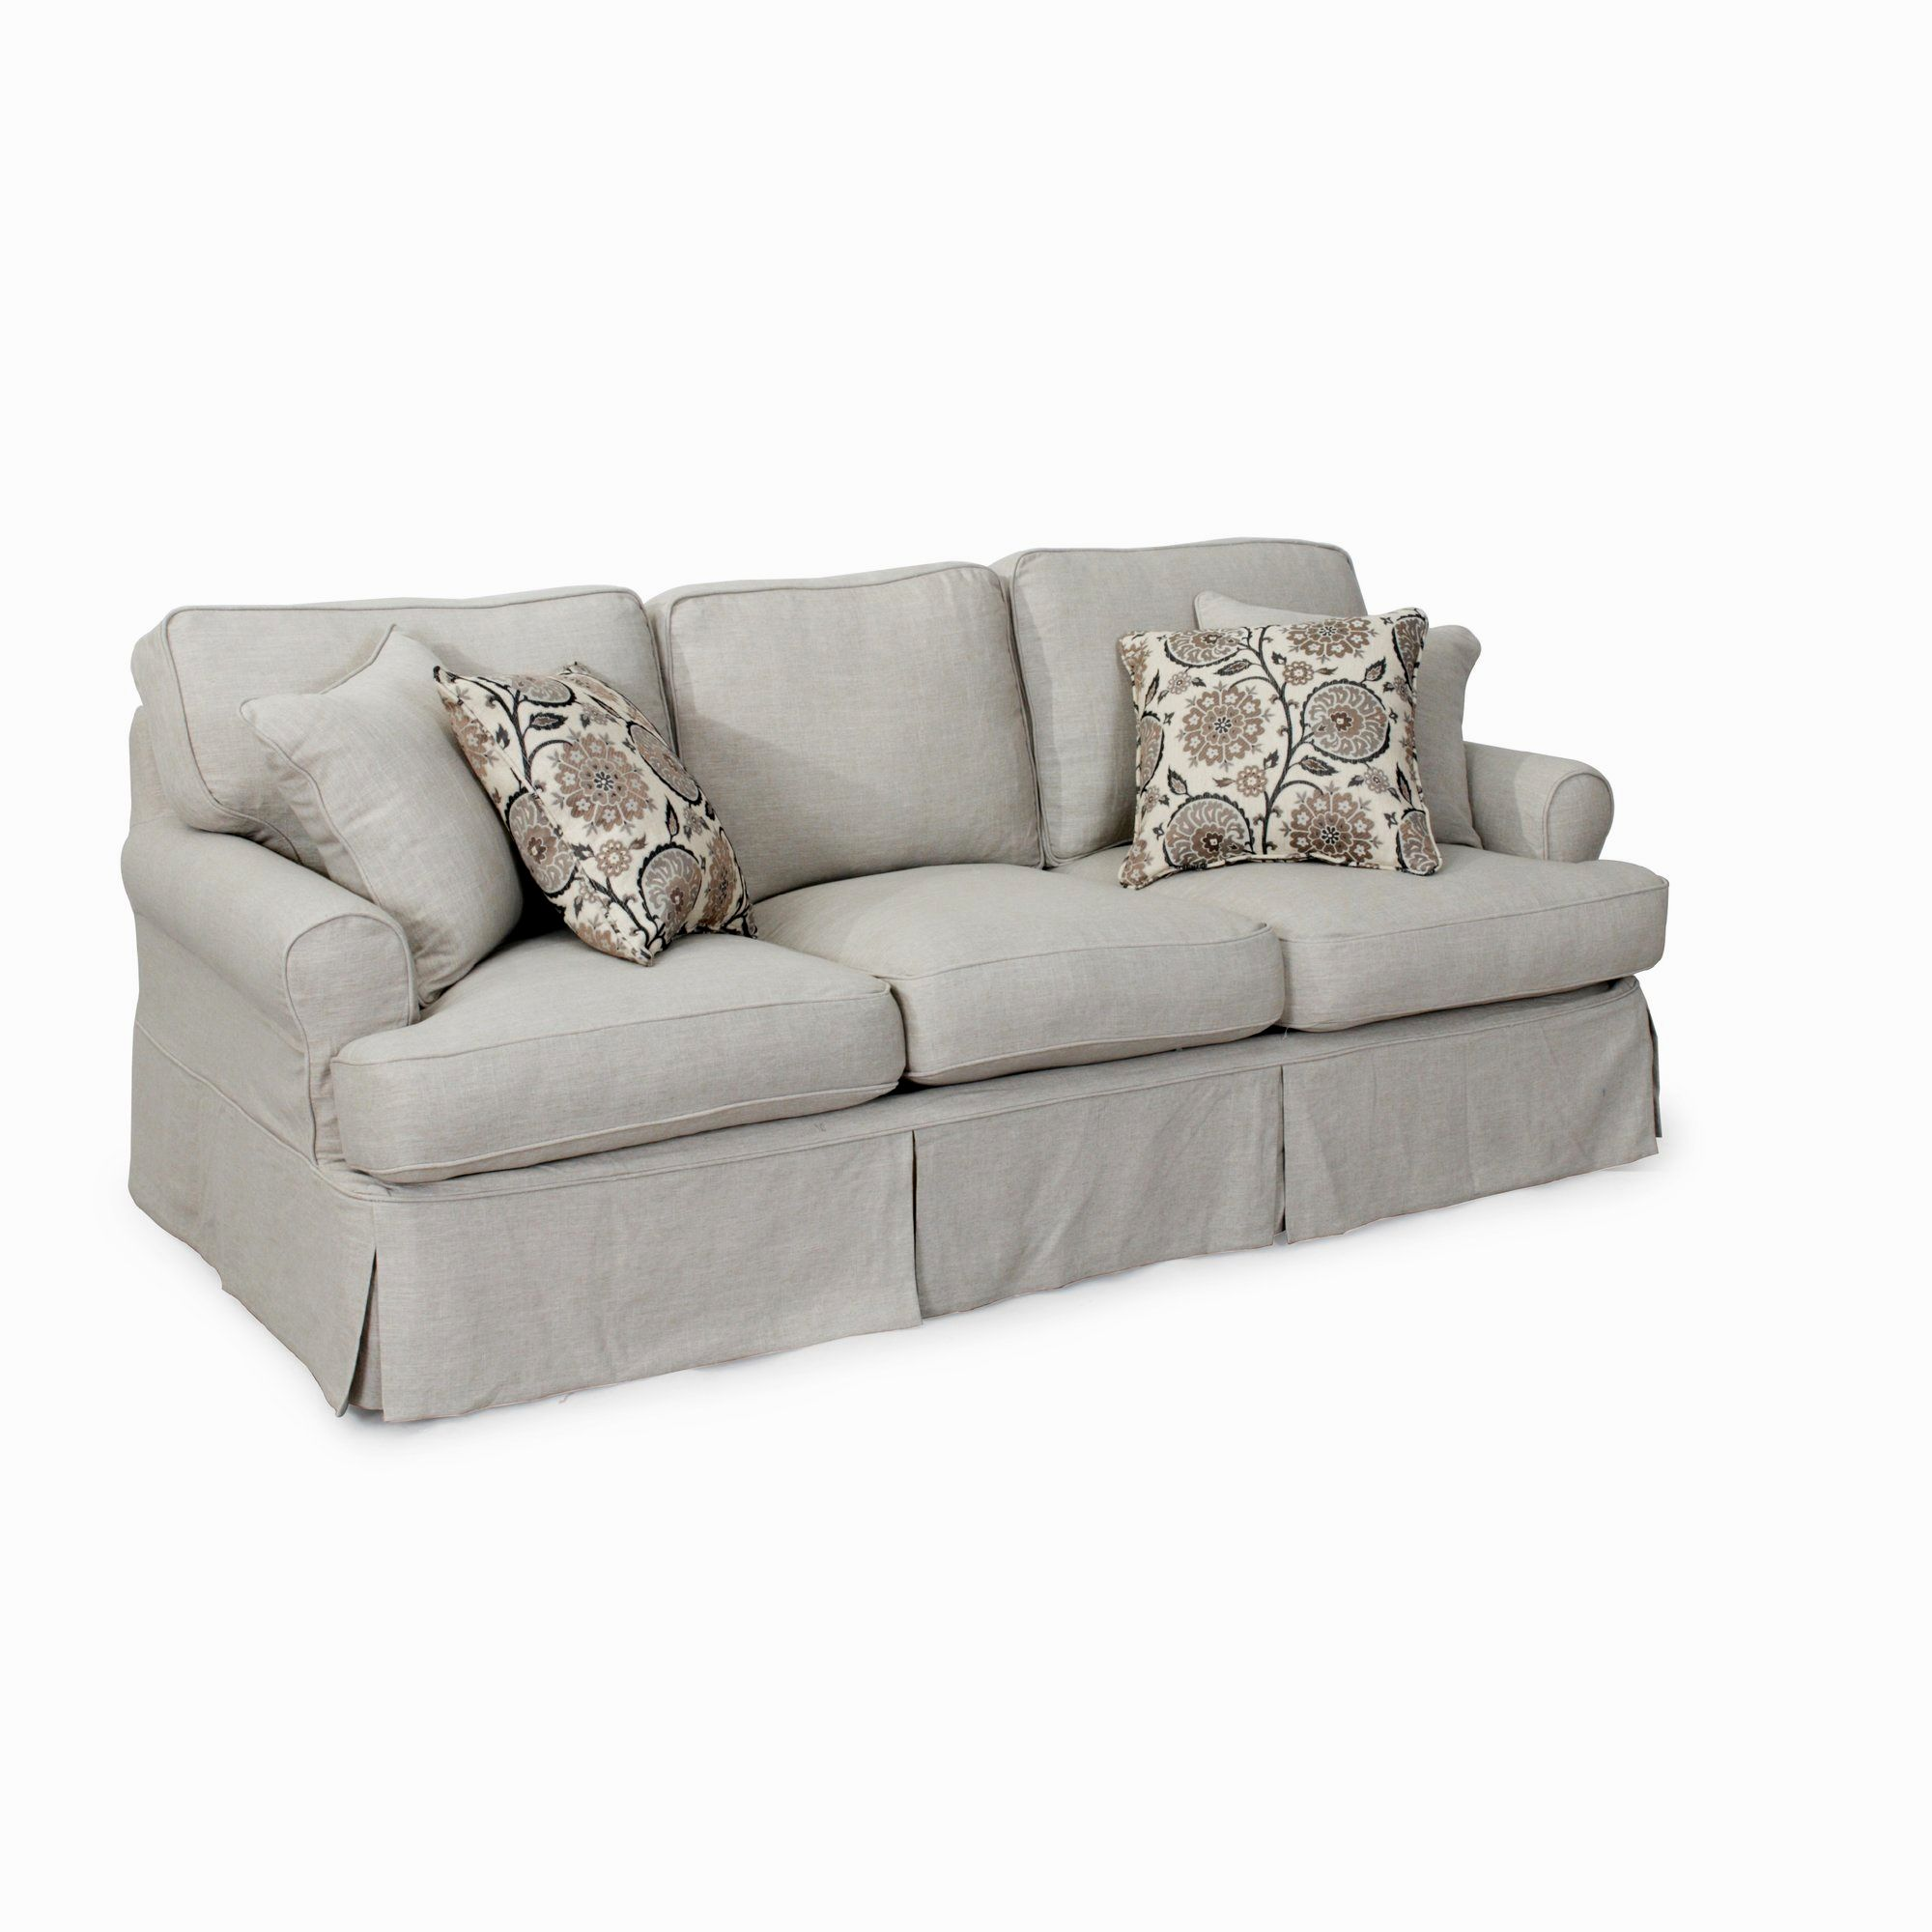 best 3 piece t cushion sofa slipcover photo-Awesome 3 Piece T Cushion sofa Slipcover Layout